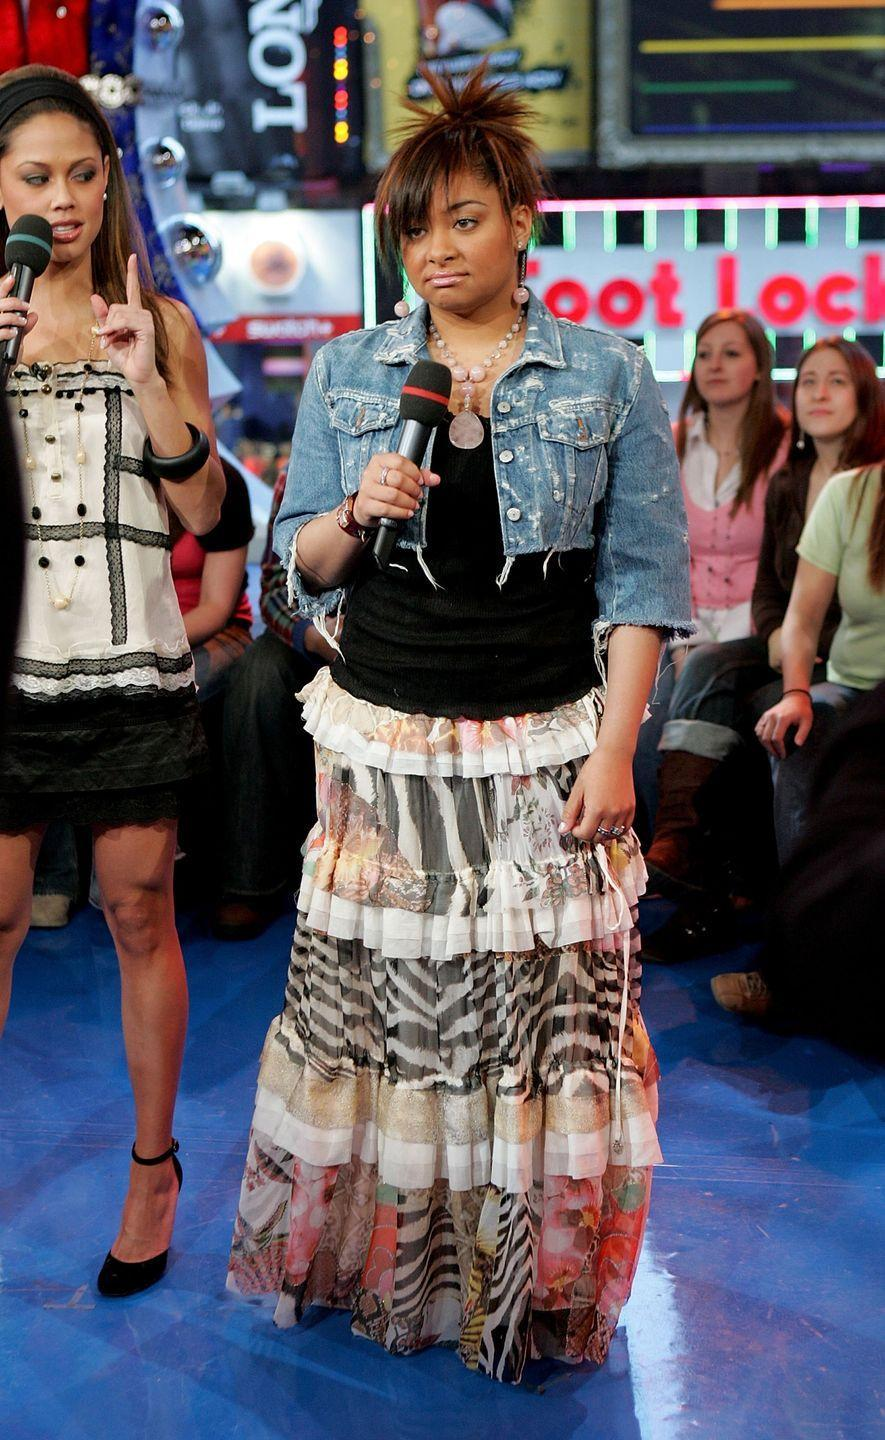 <p>Raven Symone saw into the future and knew this look wasn't going to hold up in 2020. Sorry girl. </p>